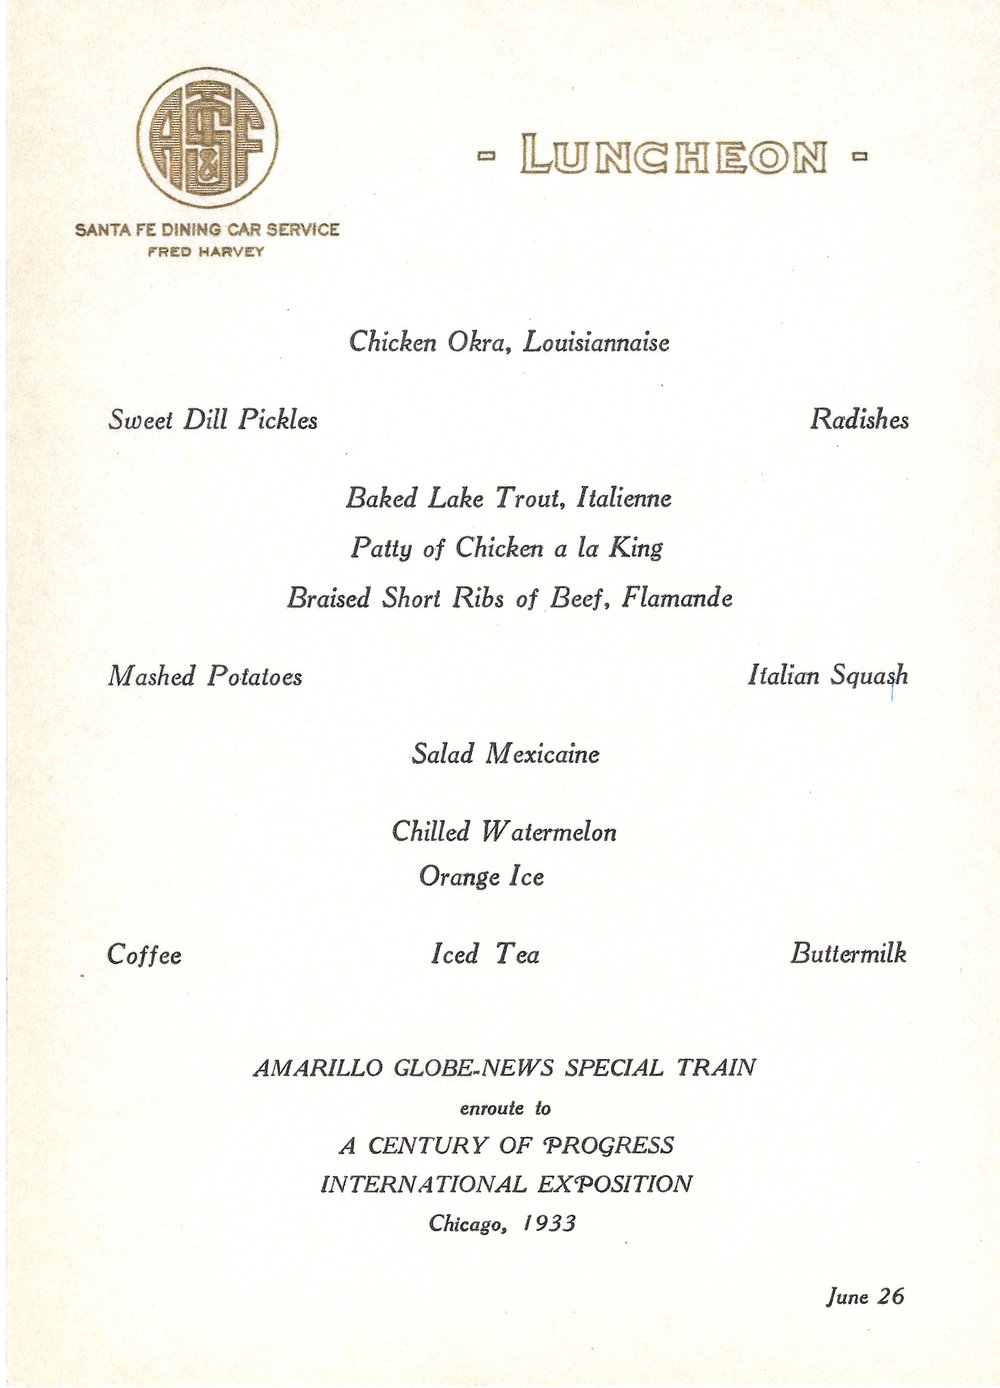 Santa Fe Lunch Menu June 26.jpg